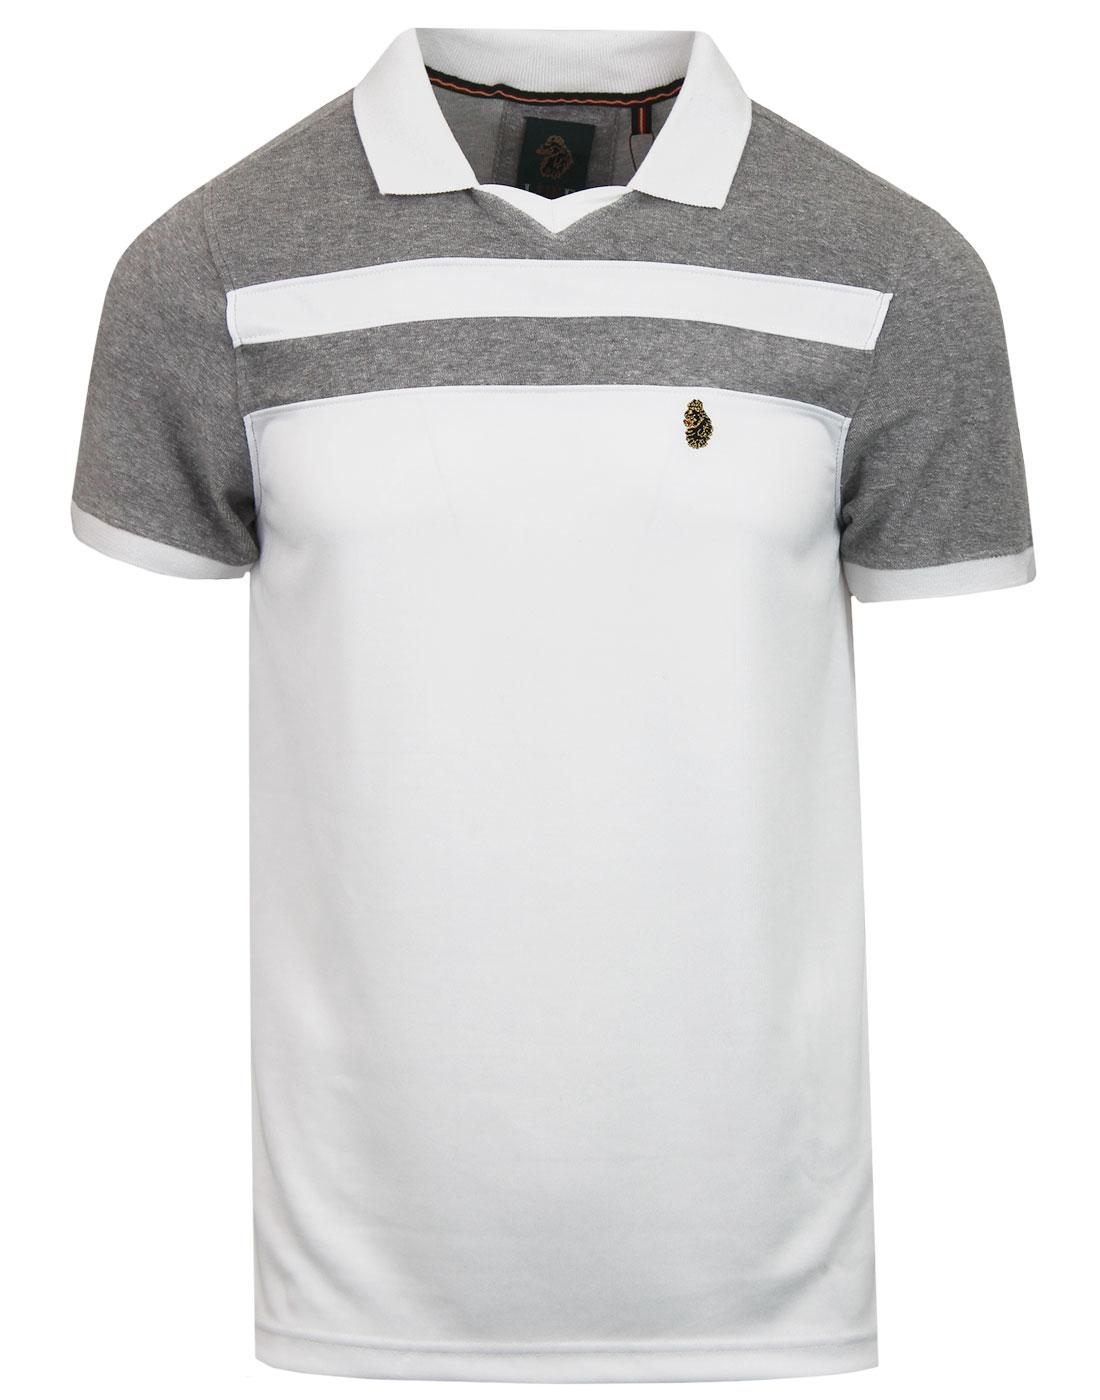 Away LUKE Retro Indie Football Collar Polo Shirt W